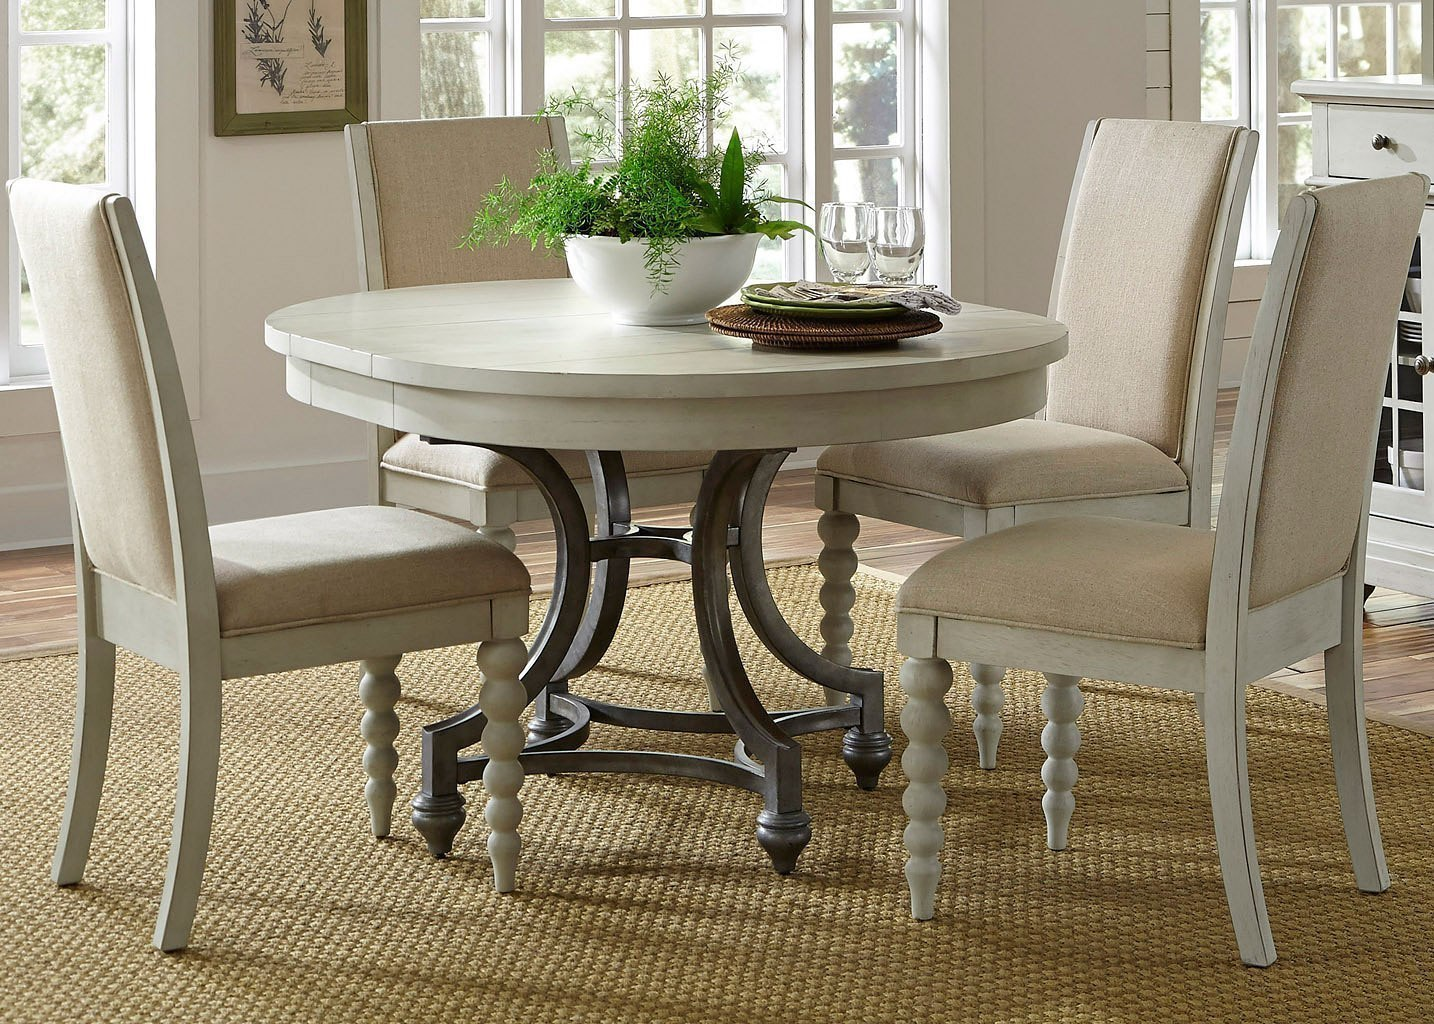 Harbor View Iii Round Dining Room Set W Upholstered